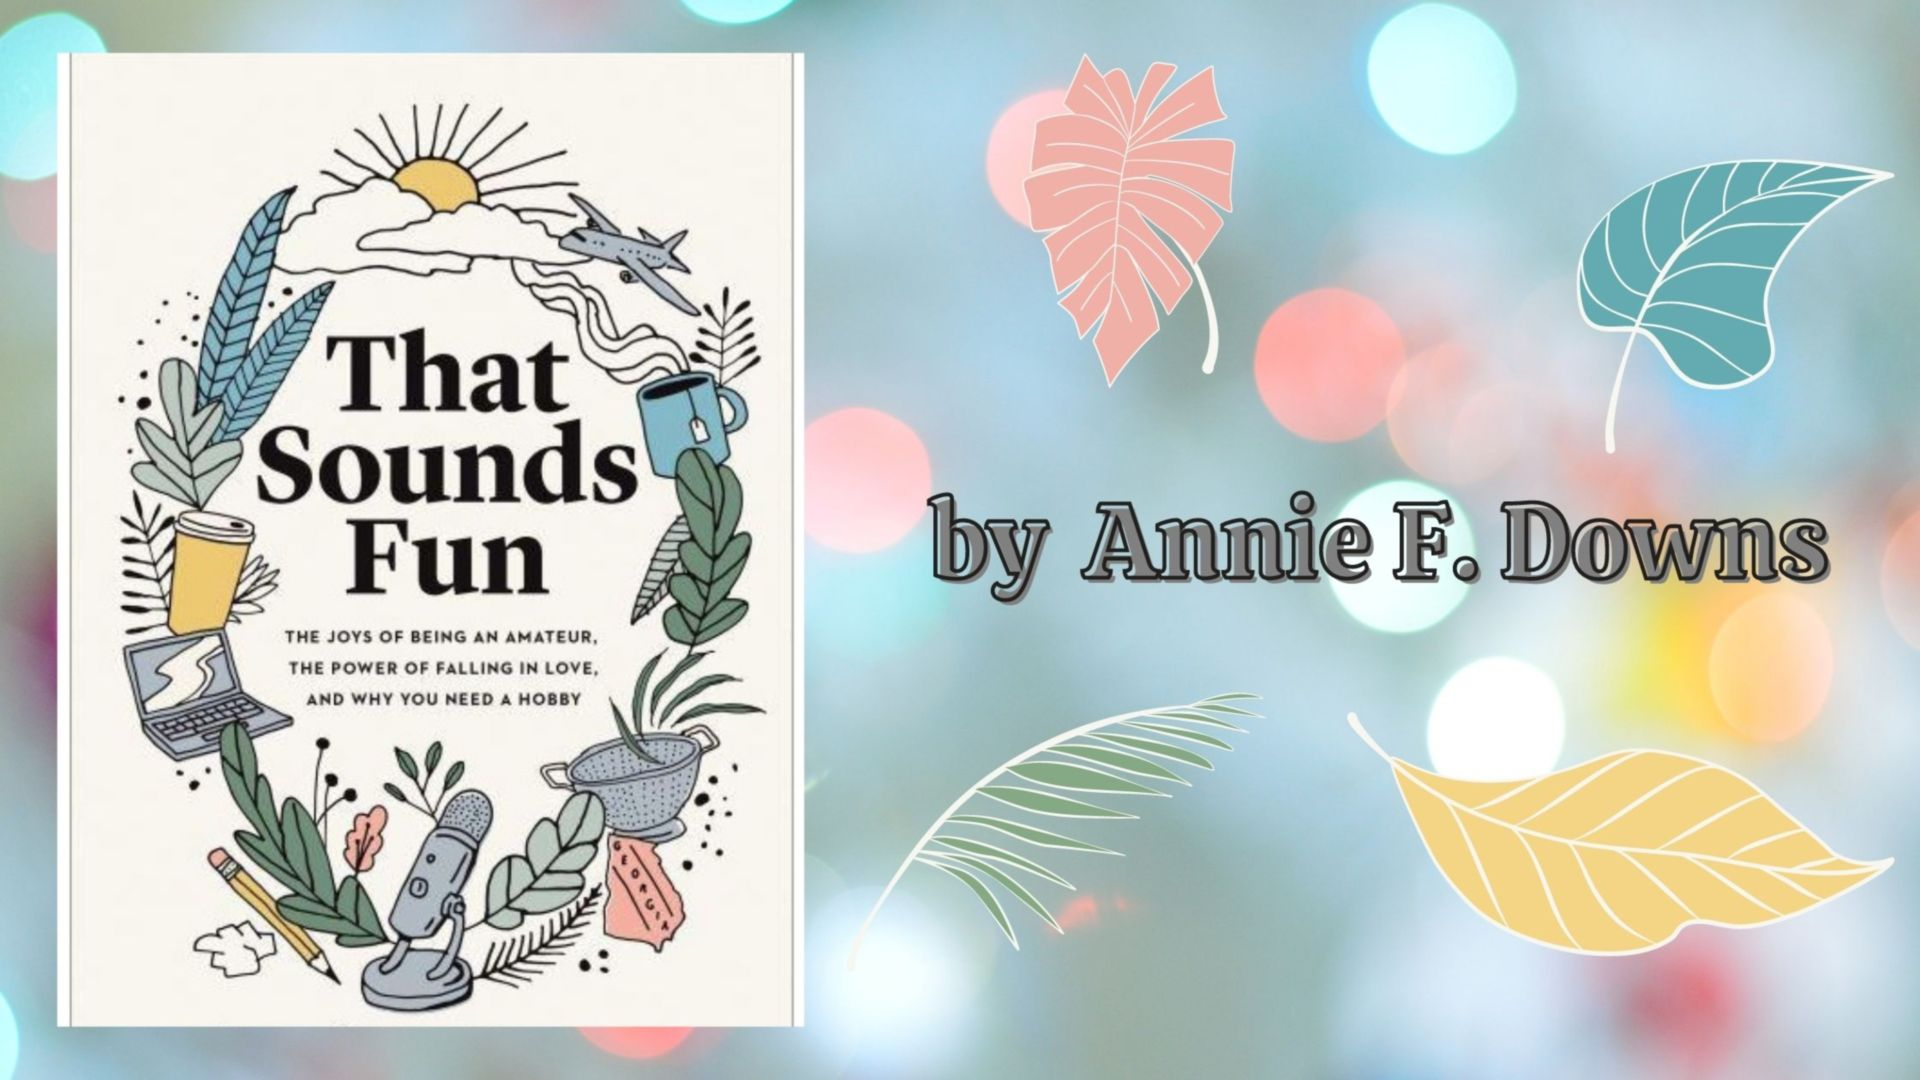 Latest book from Annie F Downs - That Sounds Fun